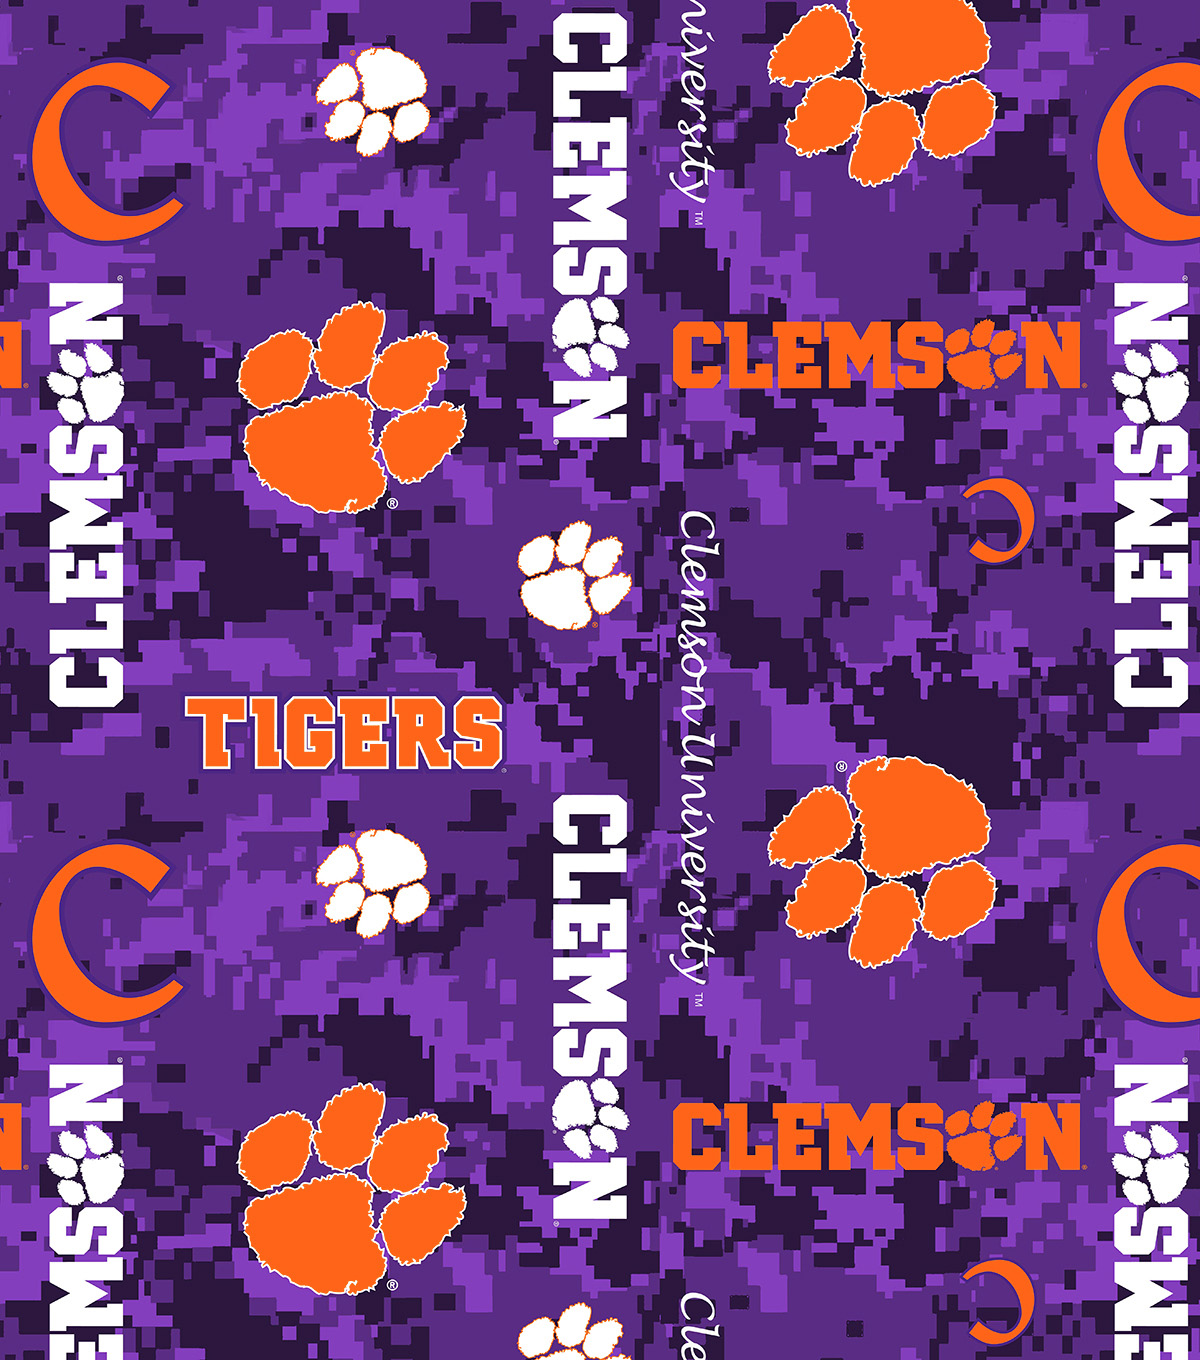 Clemson University Tigers Fleece Fabric -Digital Camo